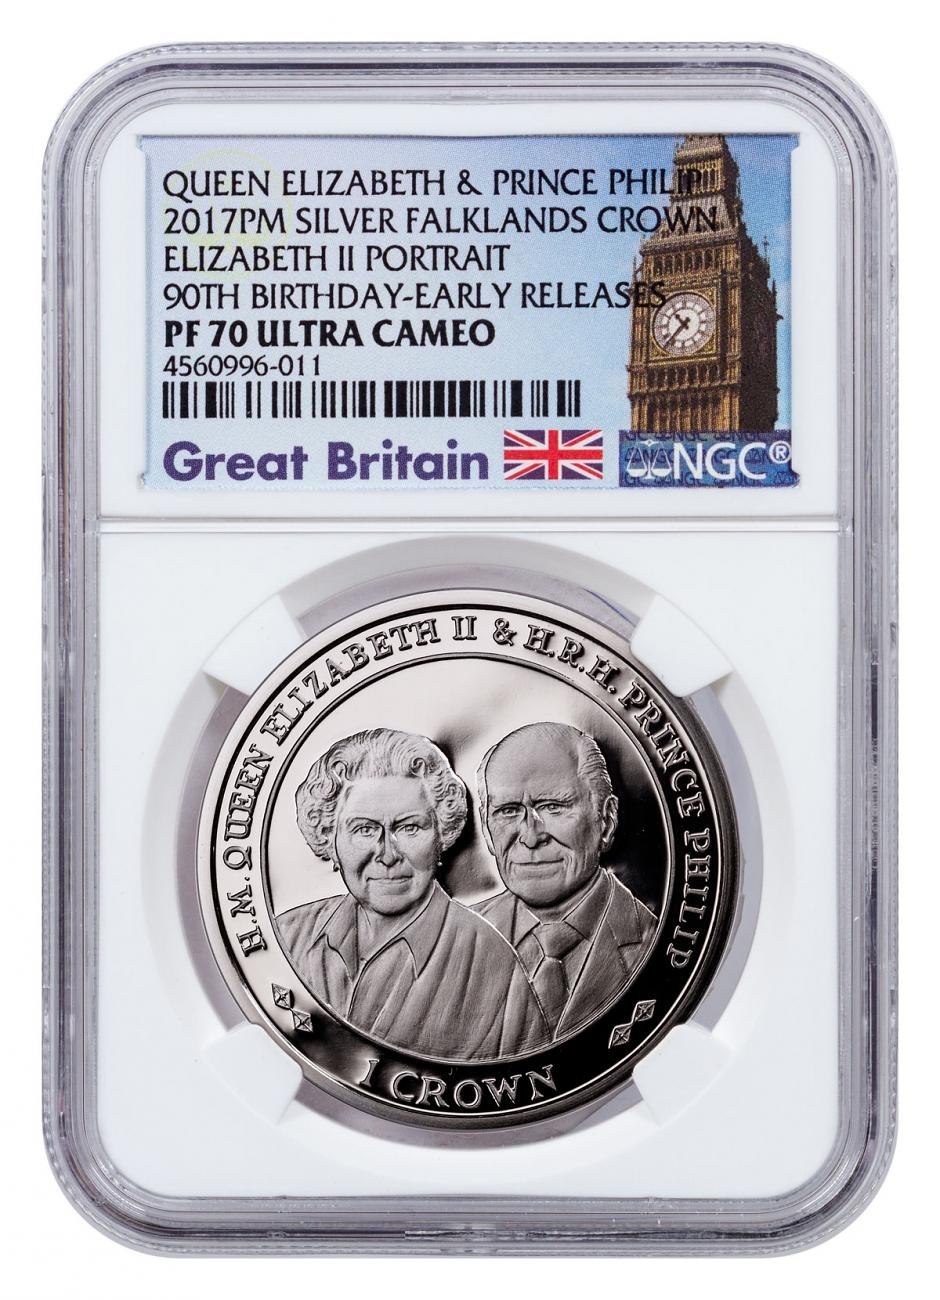 2017 Falkland Islands 70 Years of Queen Elizabeth II & Prince Phillip - 90th Birthday 1 oz Silver Proof £2 Coin NGC PF70 UC ER Exclusive Big Ben Label